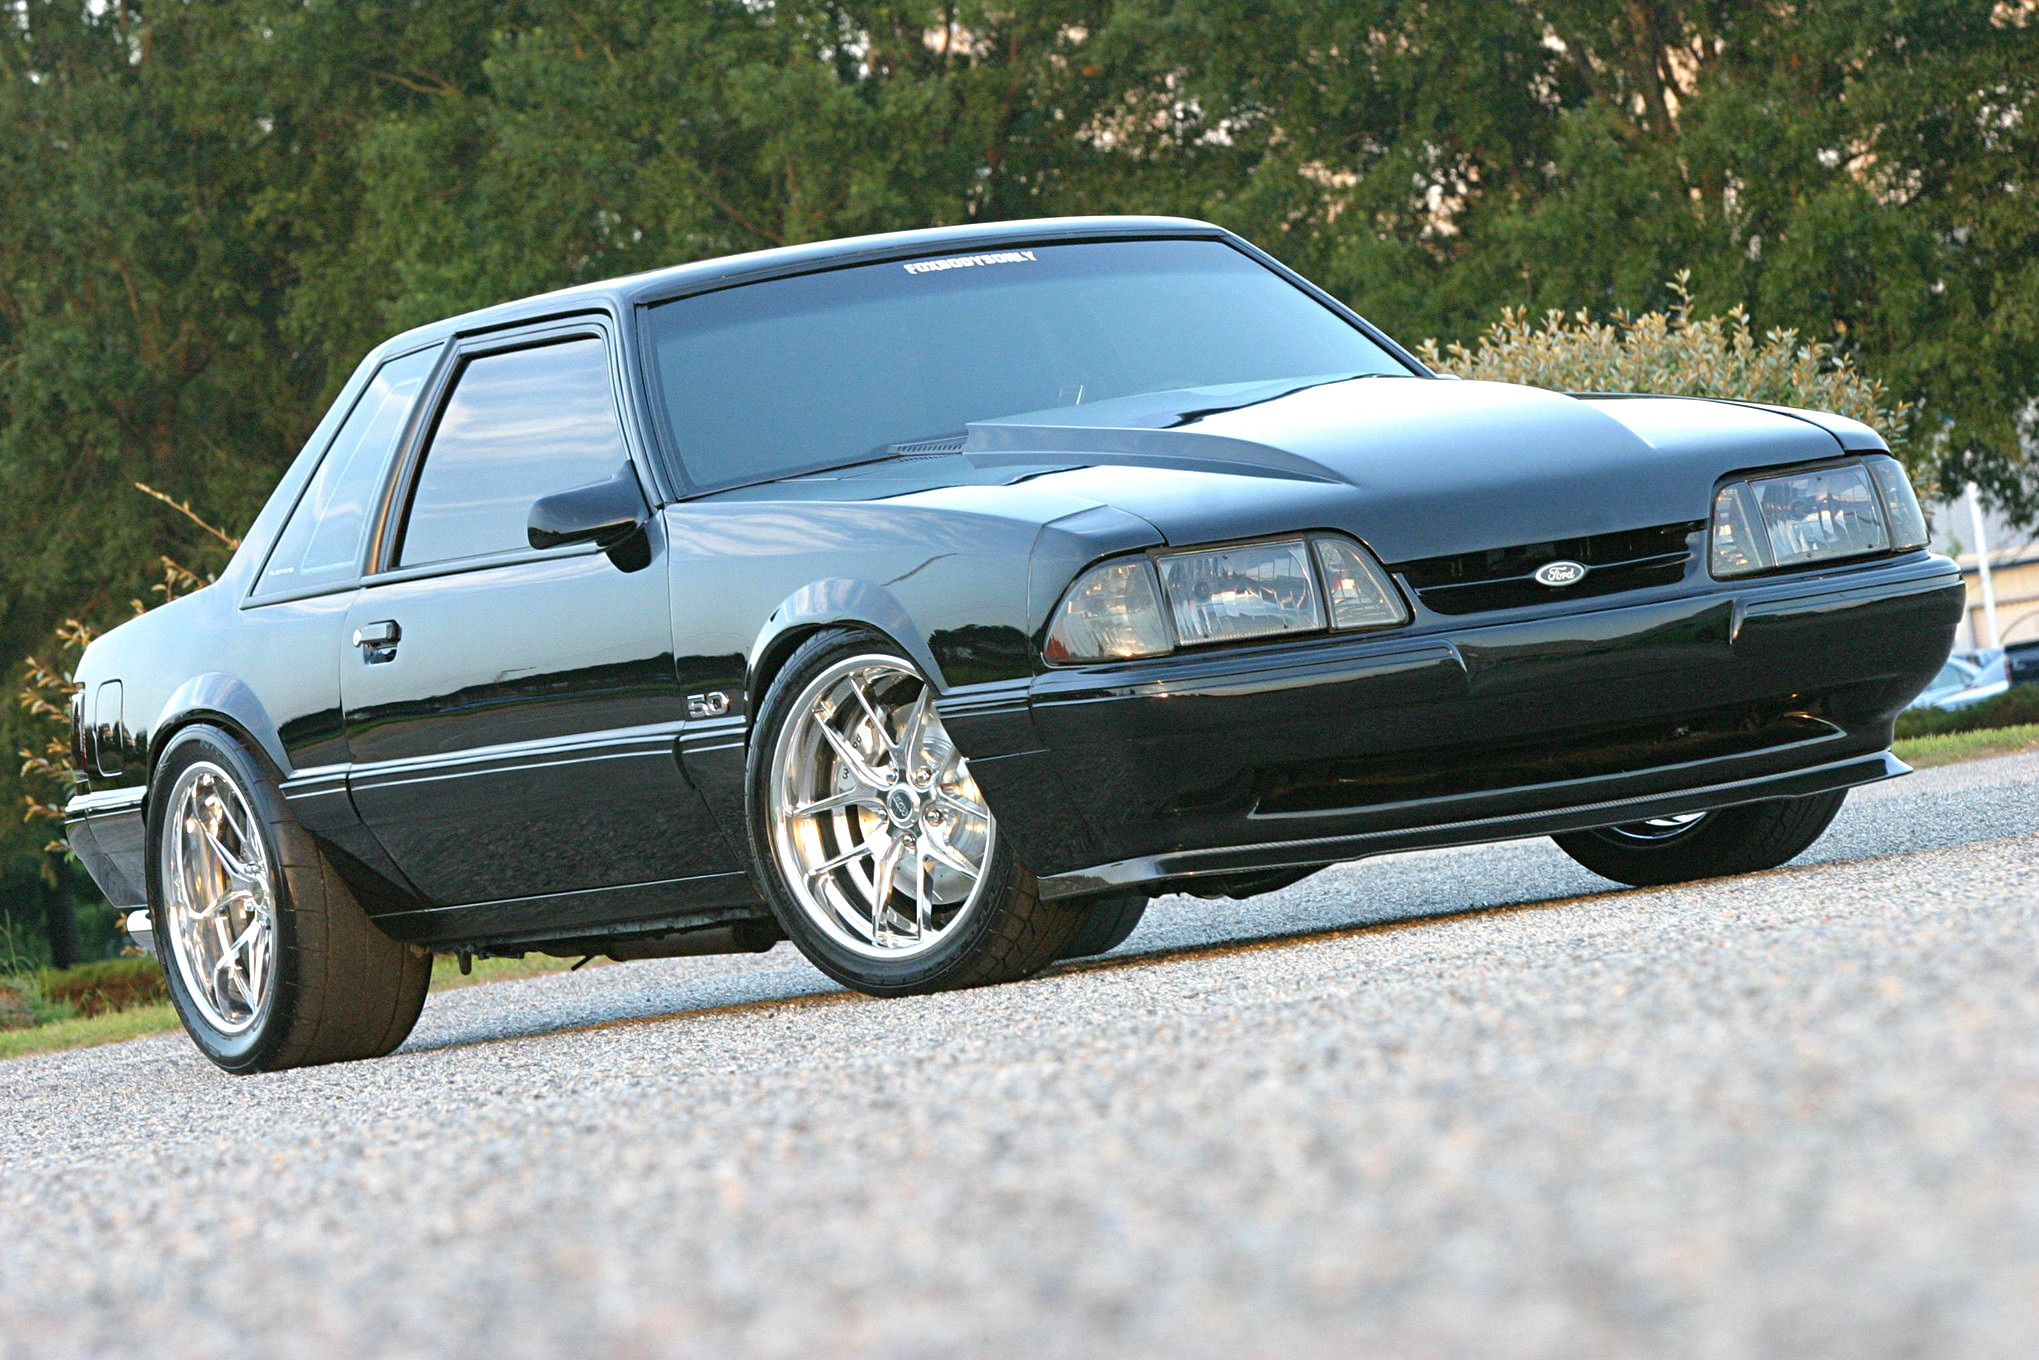 1988 Ford Mustang Lx Coupe Kody Smith Exterior